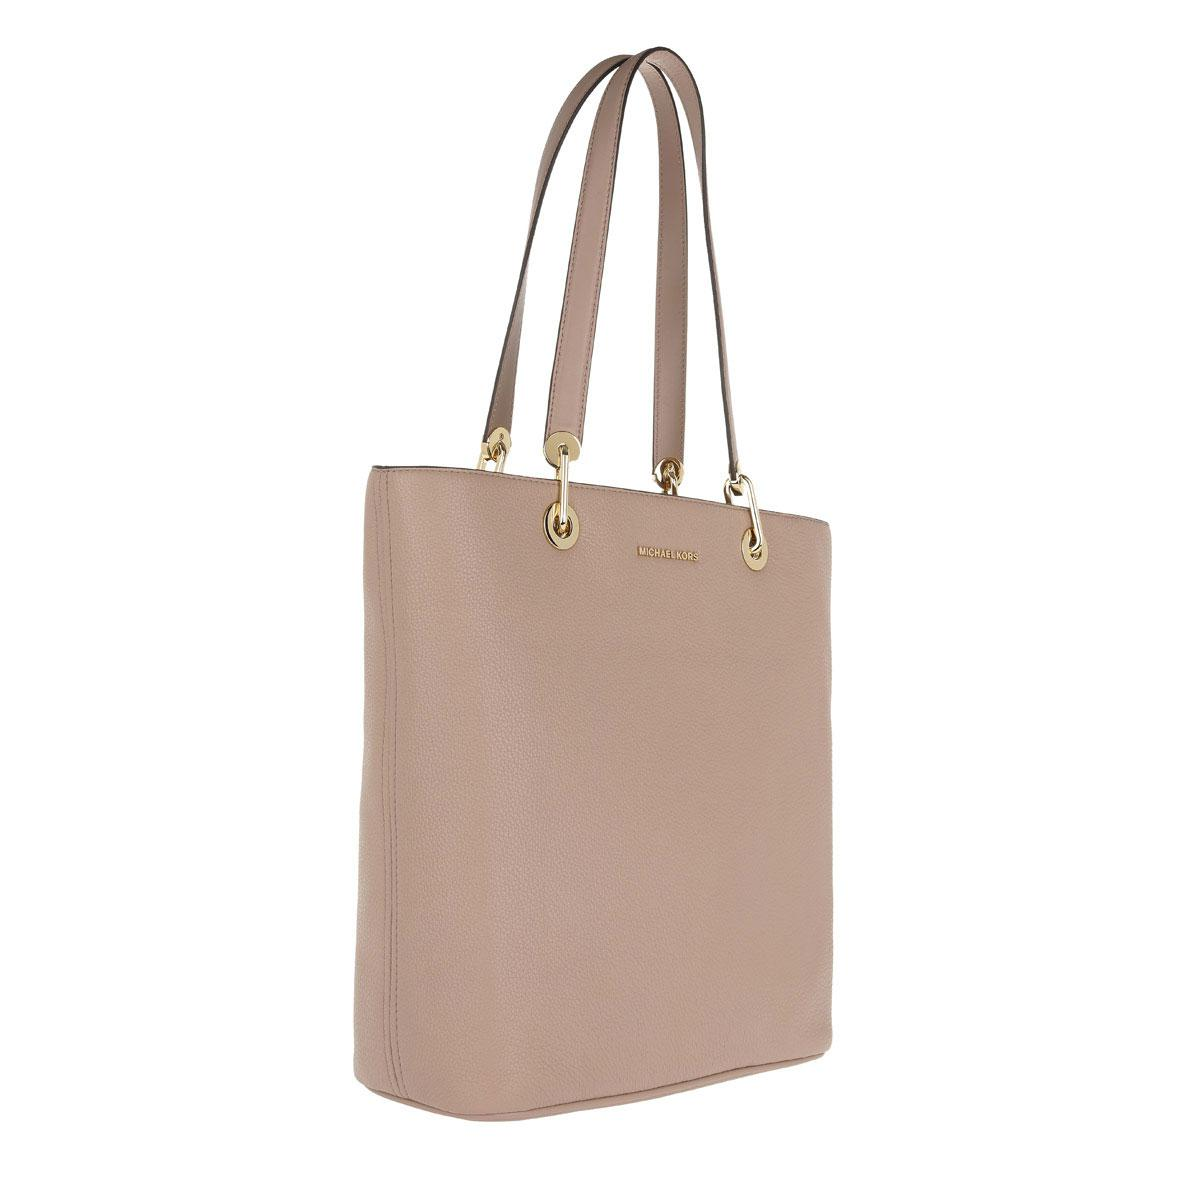 37fbac7bc256 Michael Kors Raven Lg Ns Tz Tote Leather Fawn - Lyst